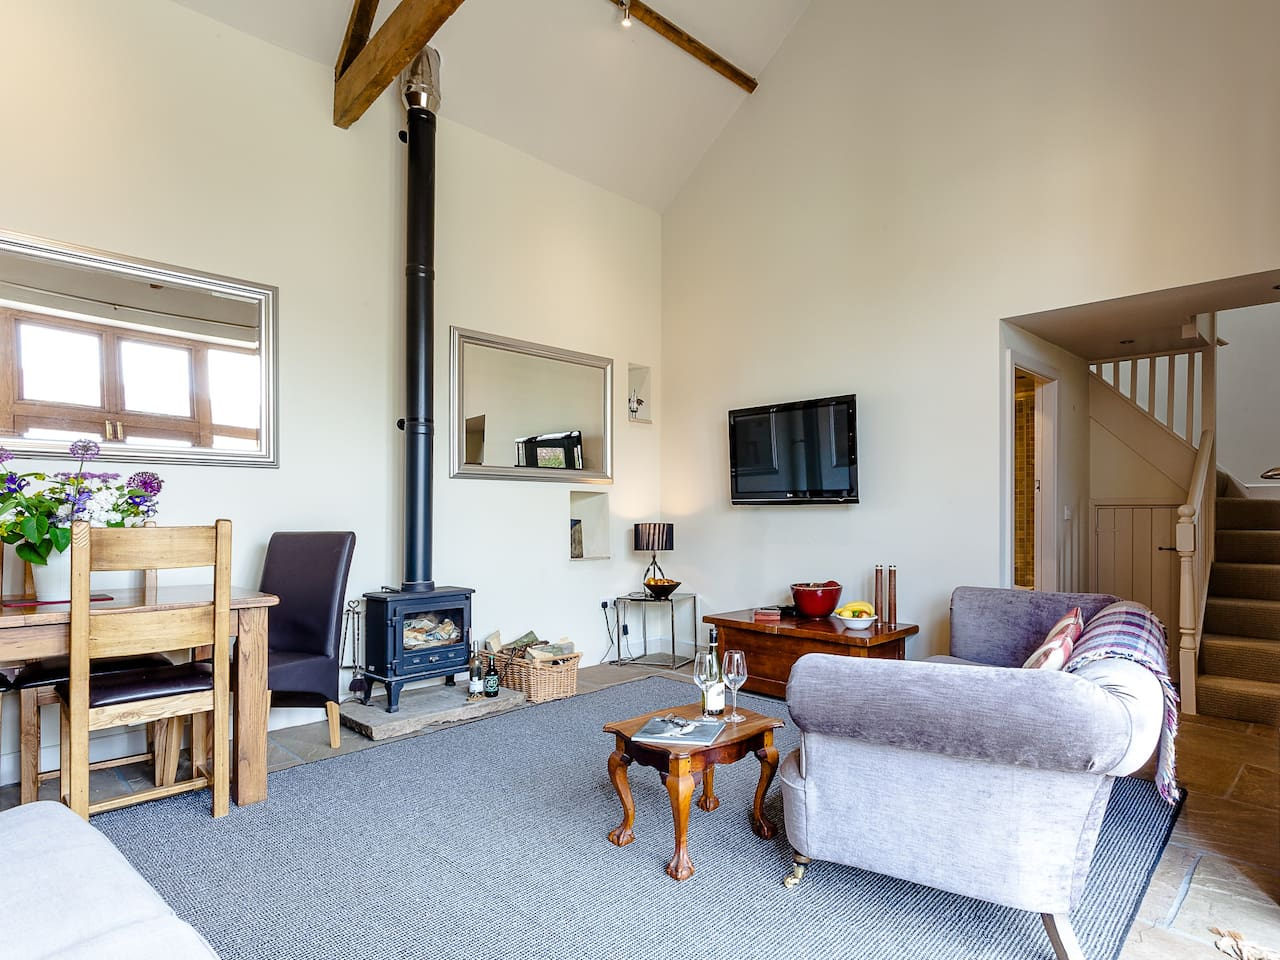 Welcome to The Barn. Snuggle down in the living room with the cosy log burner.